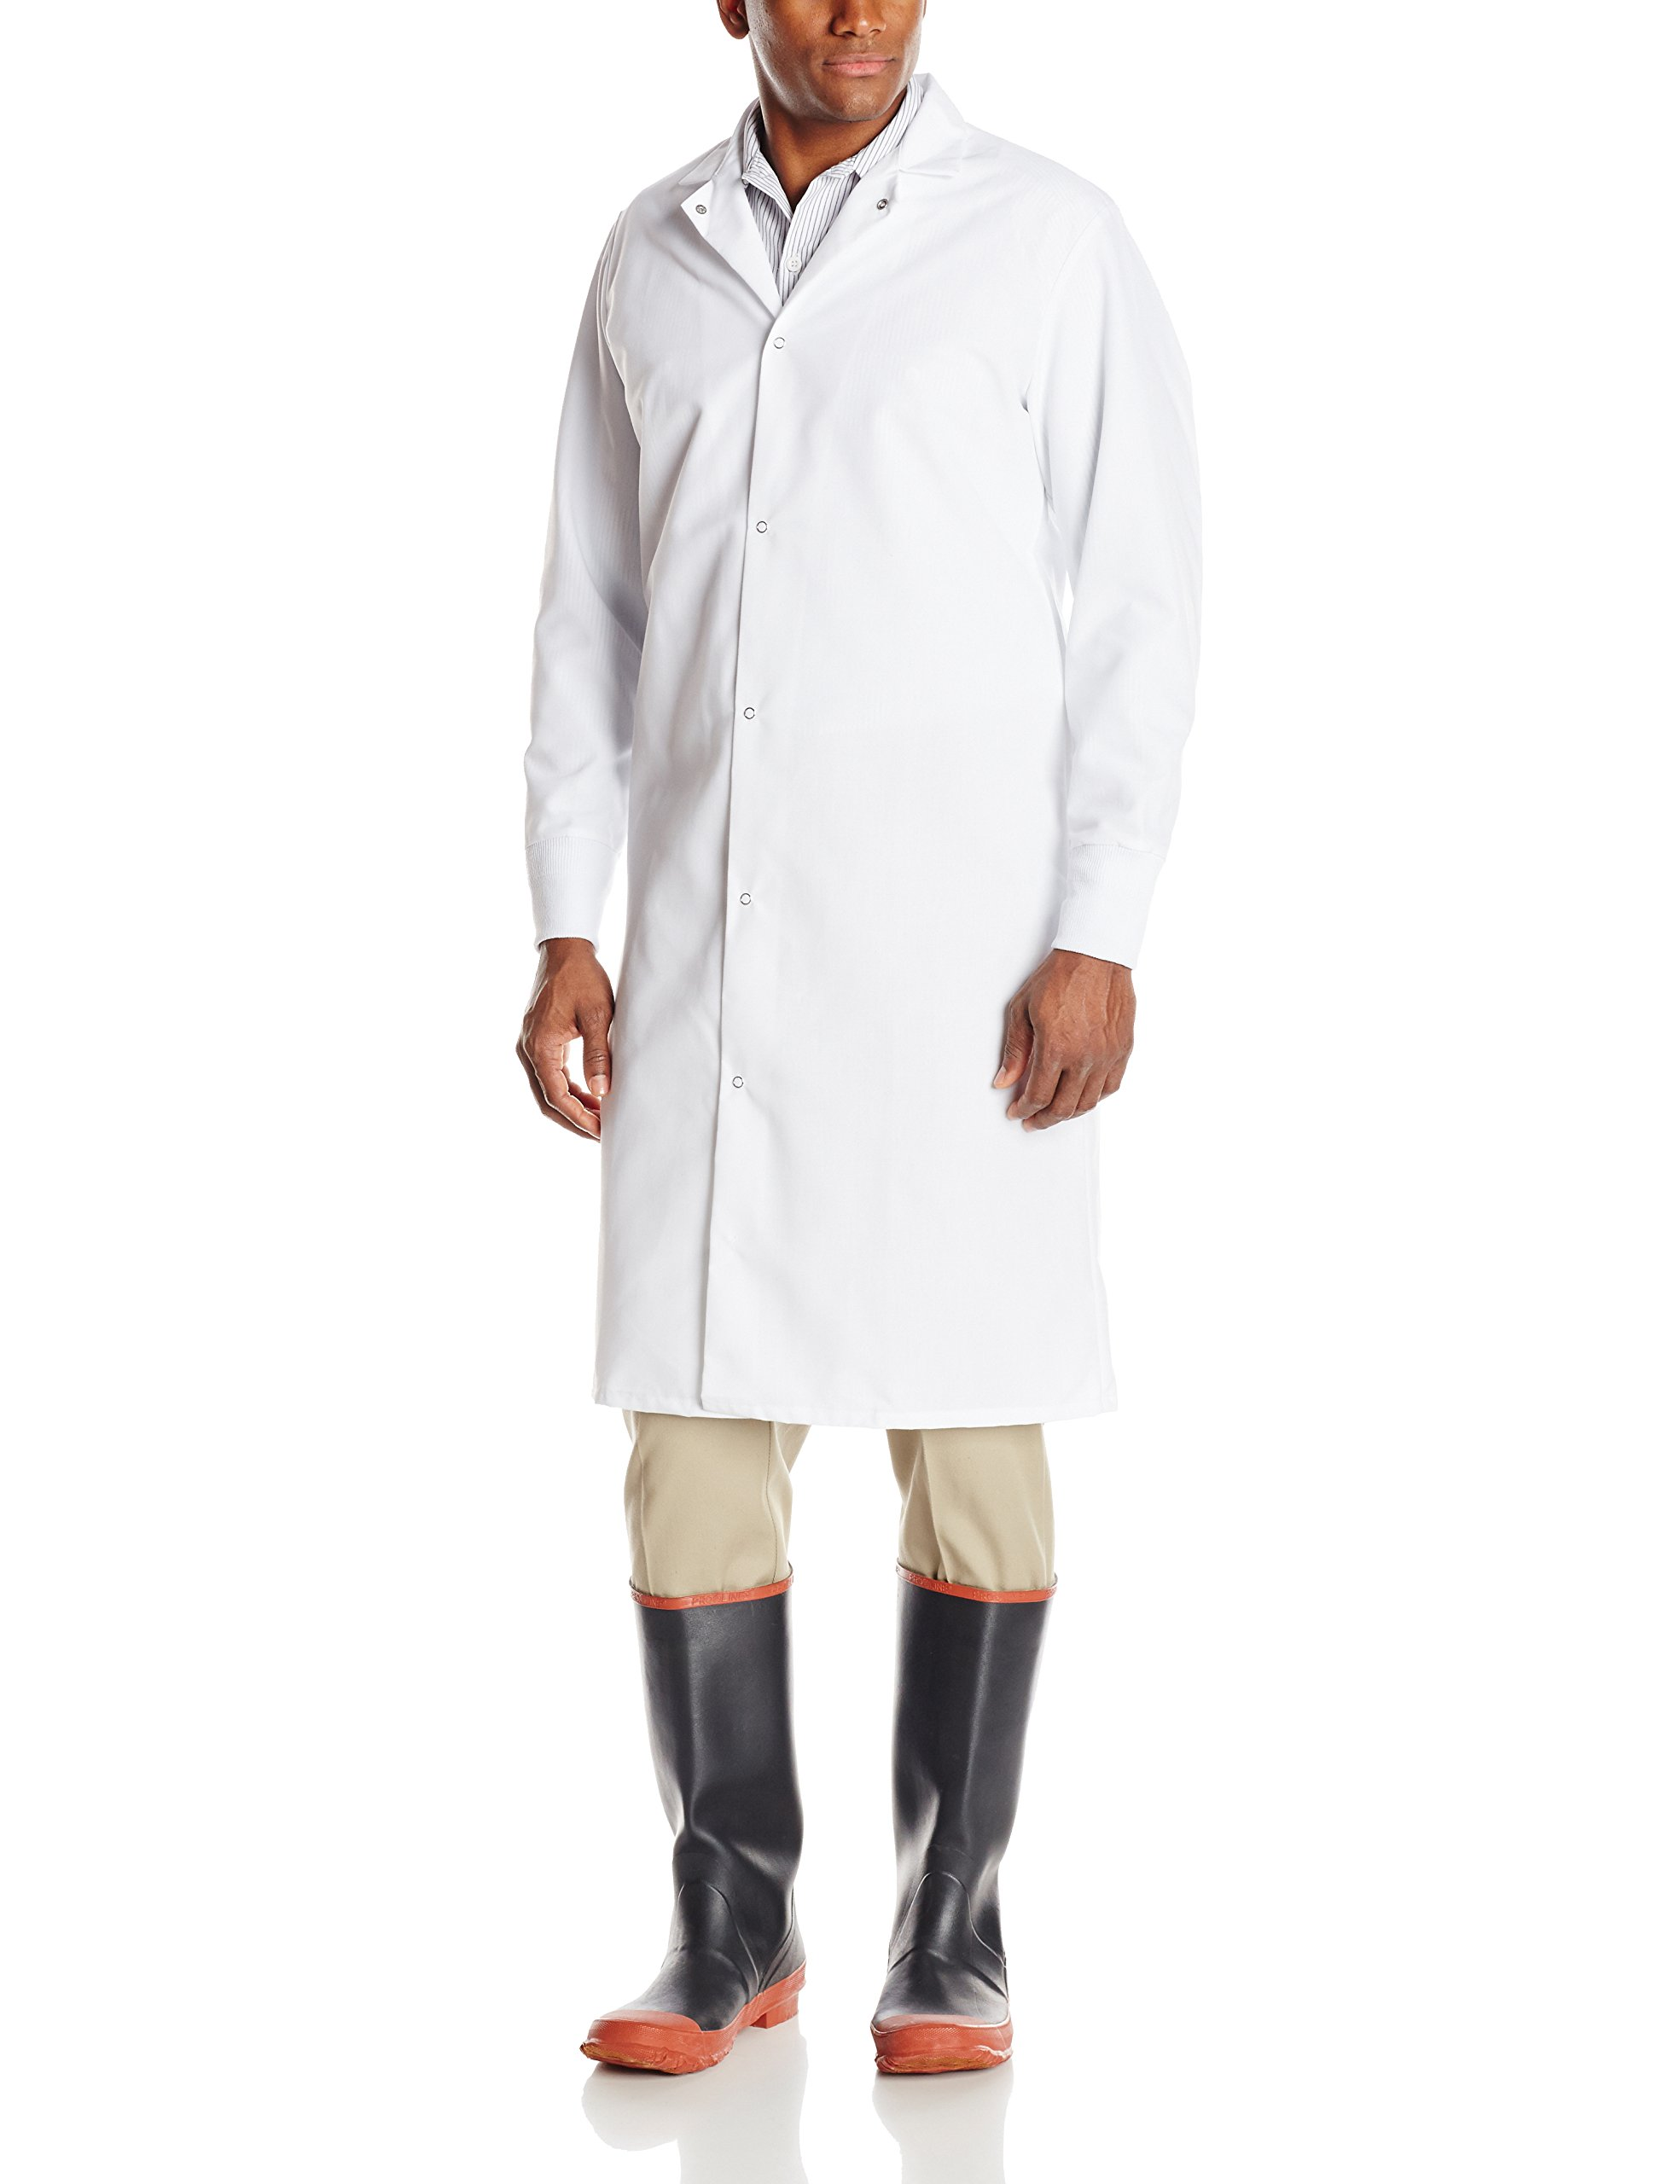 Red Kap Men's Gripper Front Spun Polyester Pocketless Butcher Coat With Knit Cuffs, White, 2X-Large